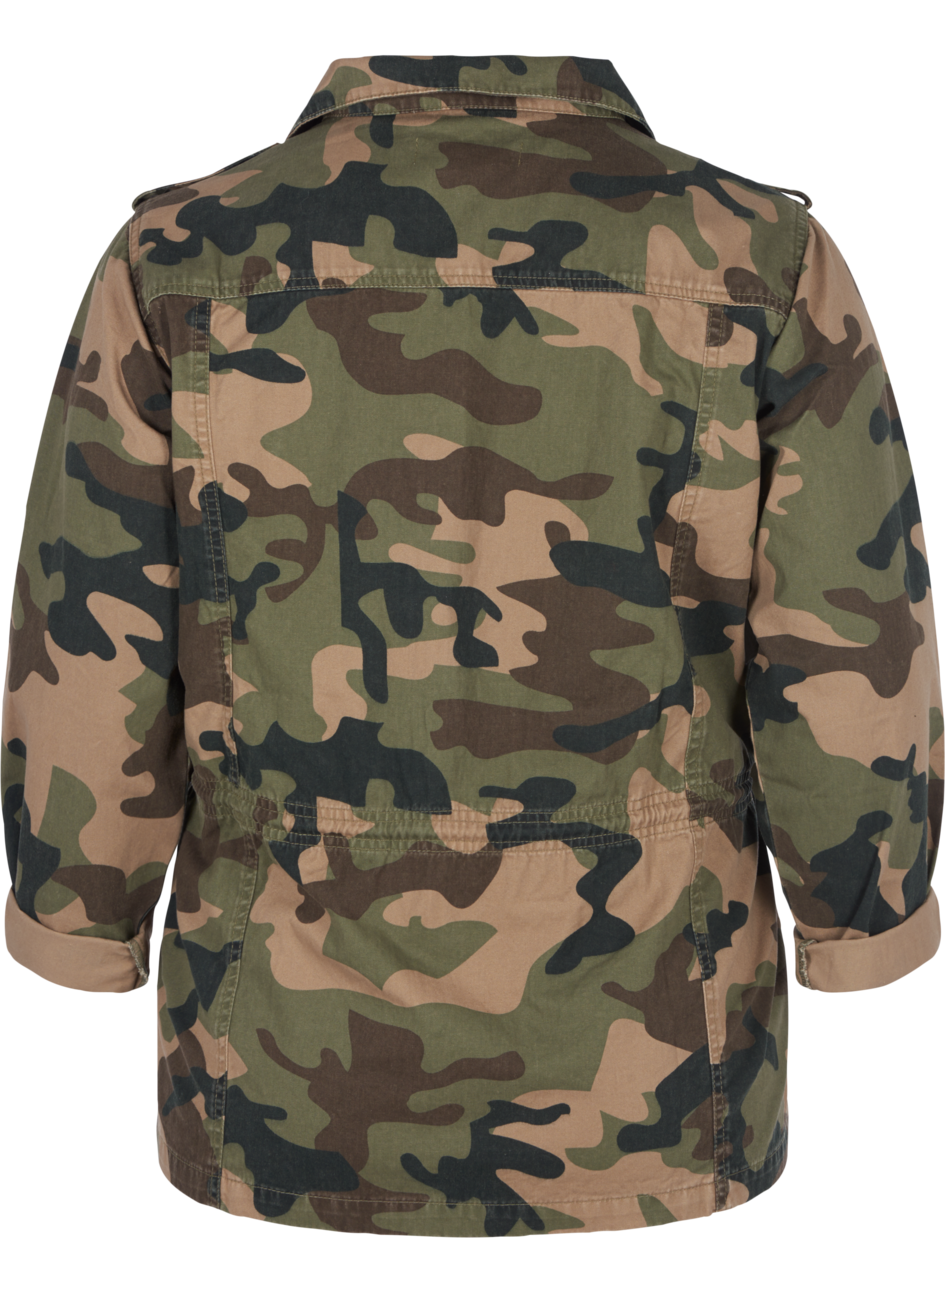 Jacke mit Camouflage Muster